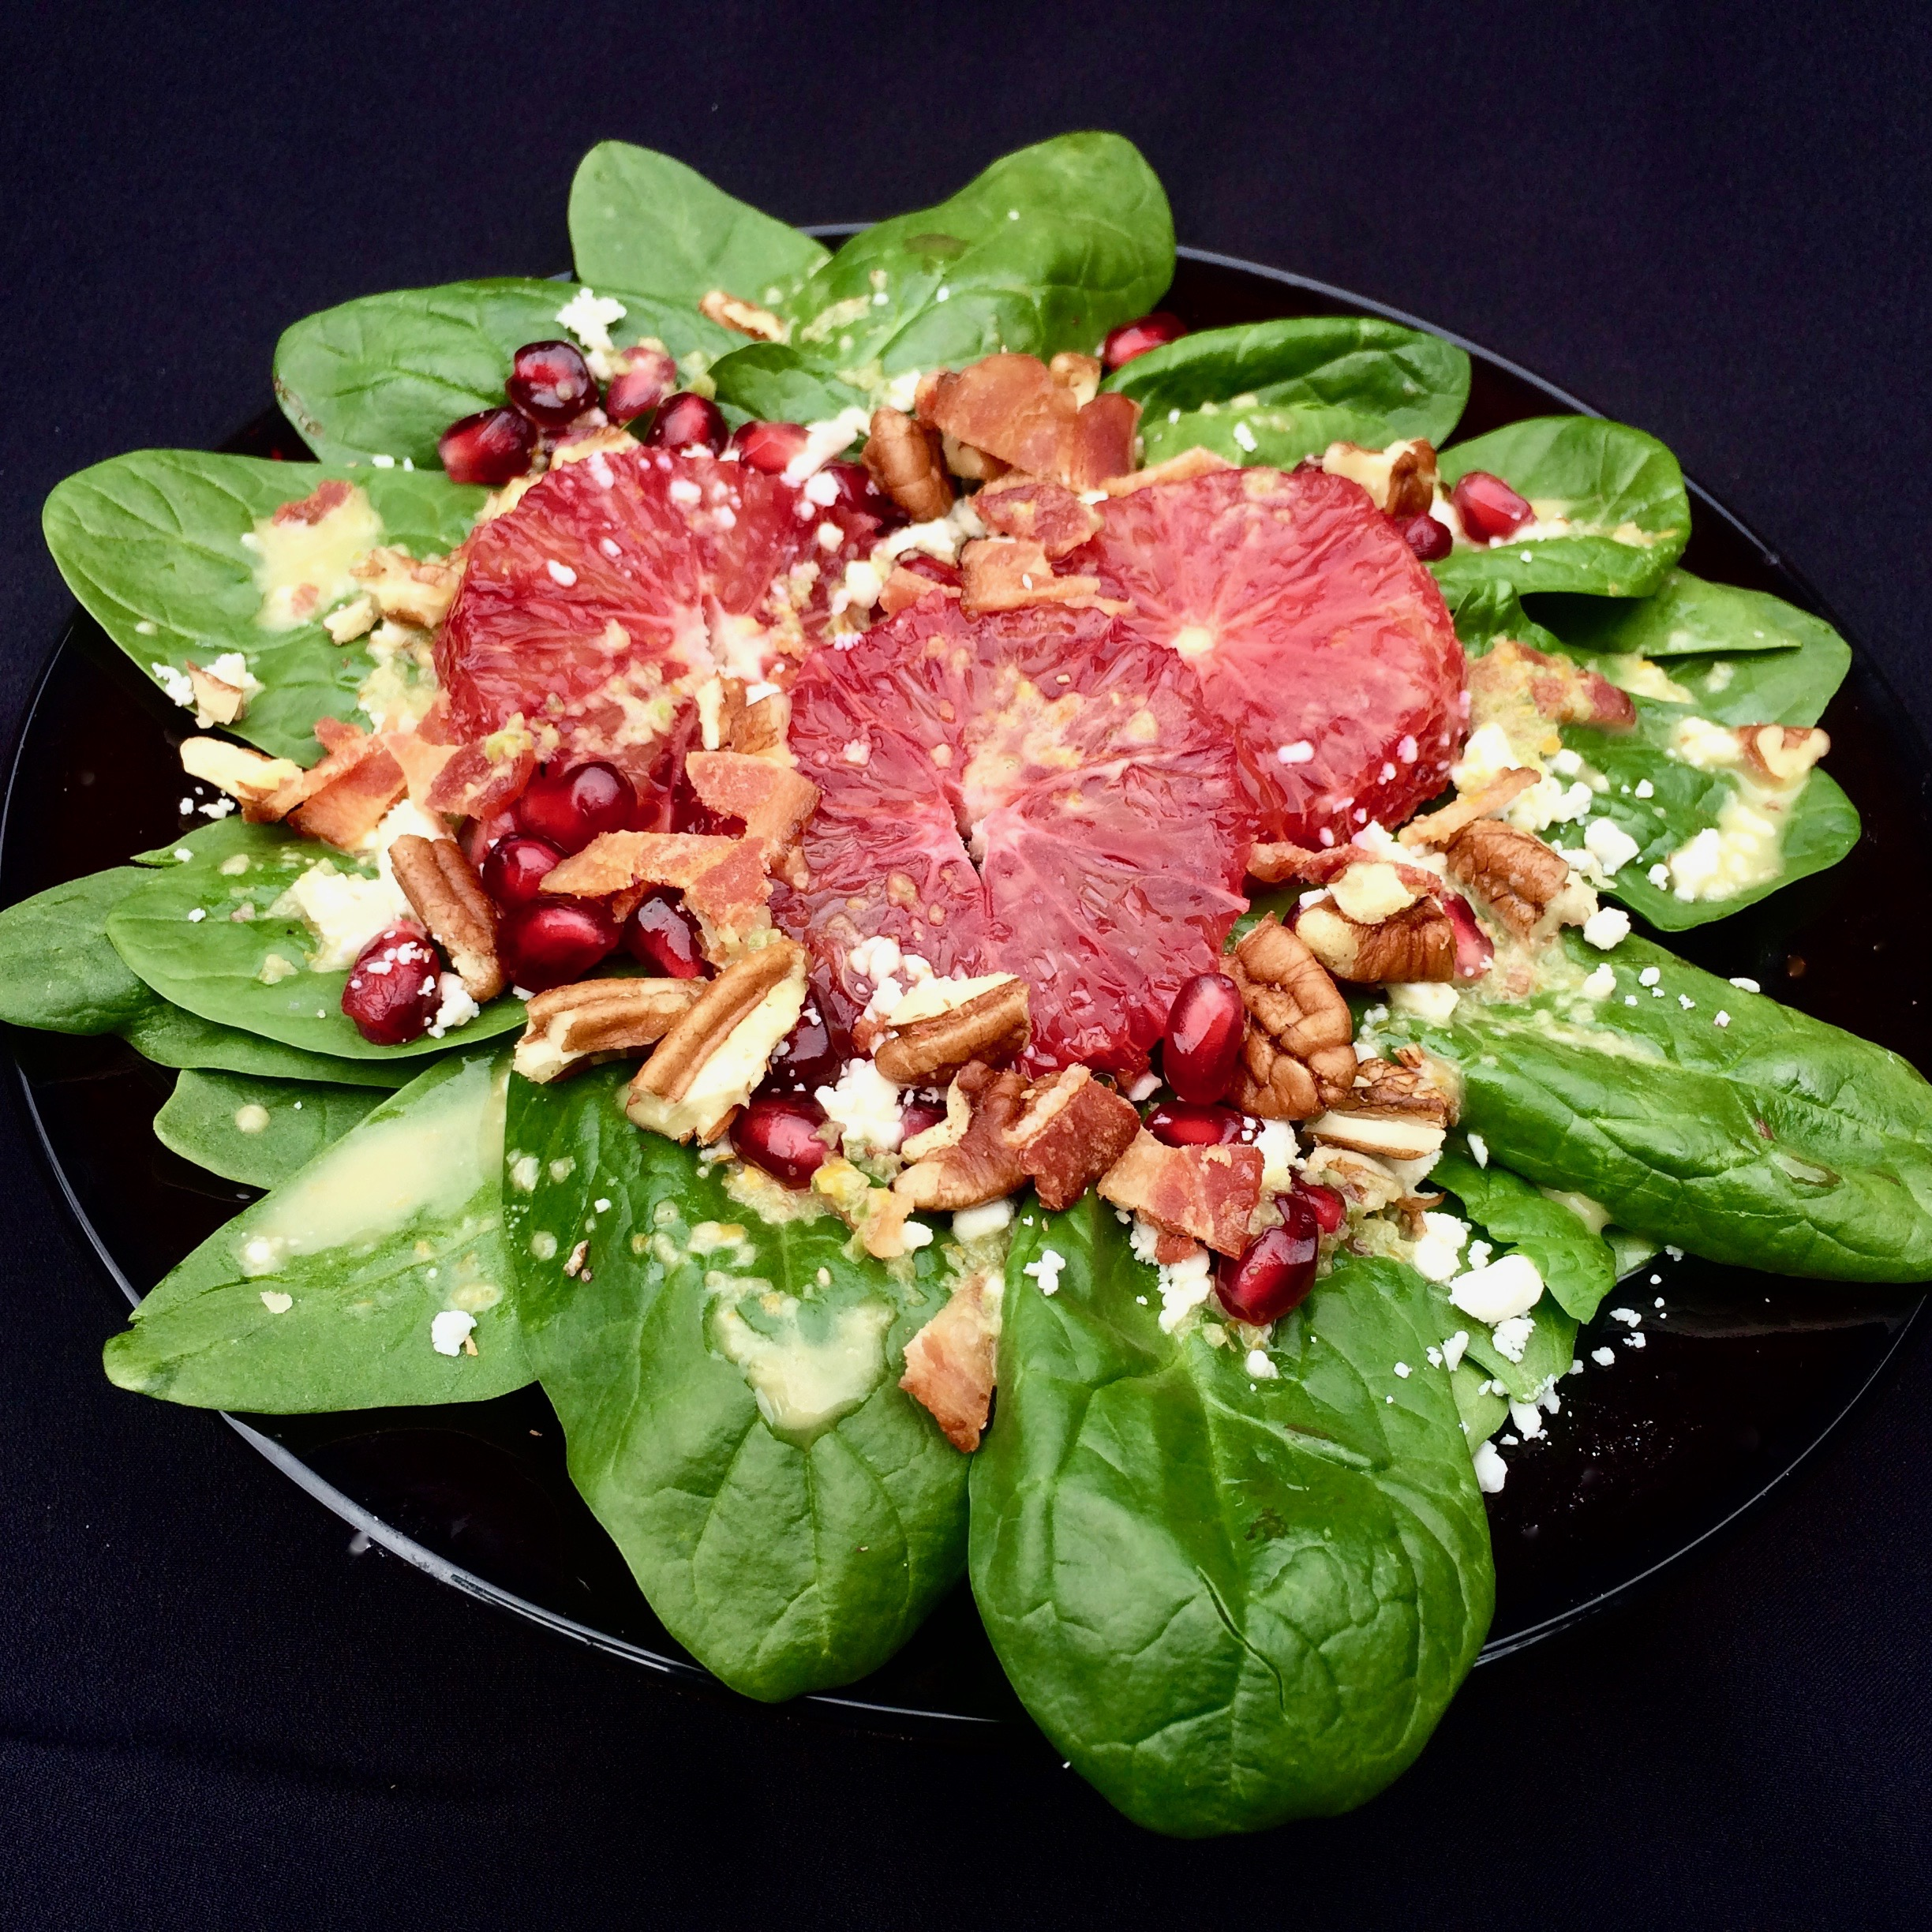 Blood Orange and Spinach Salad with Jalapeno Vinaigrette